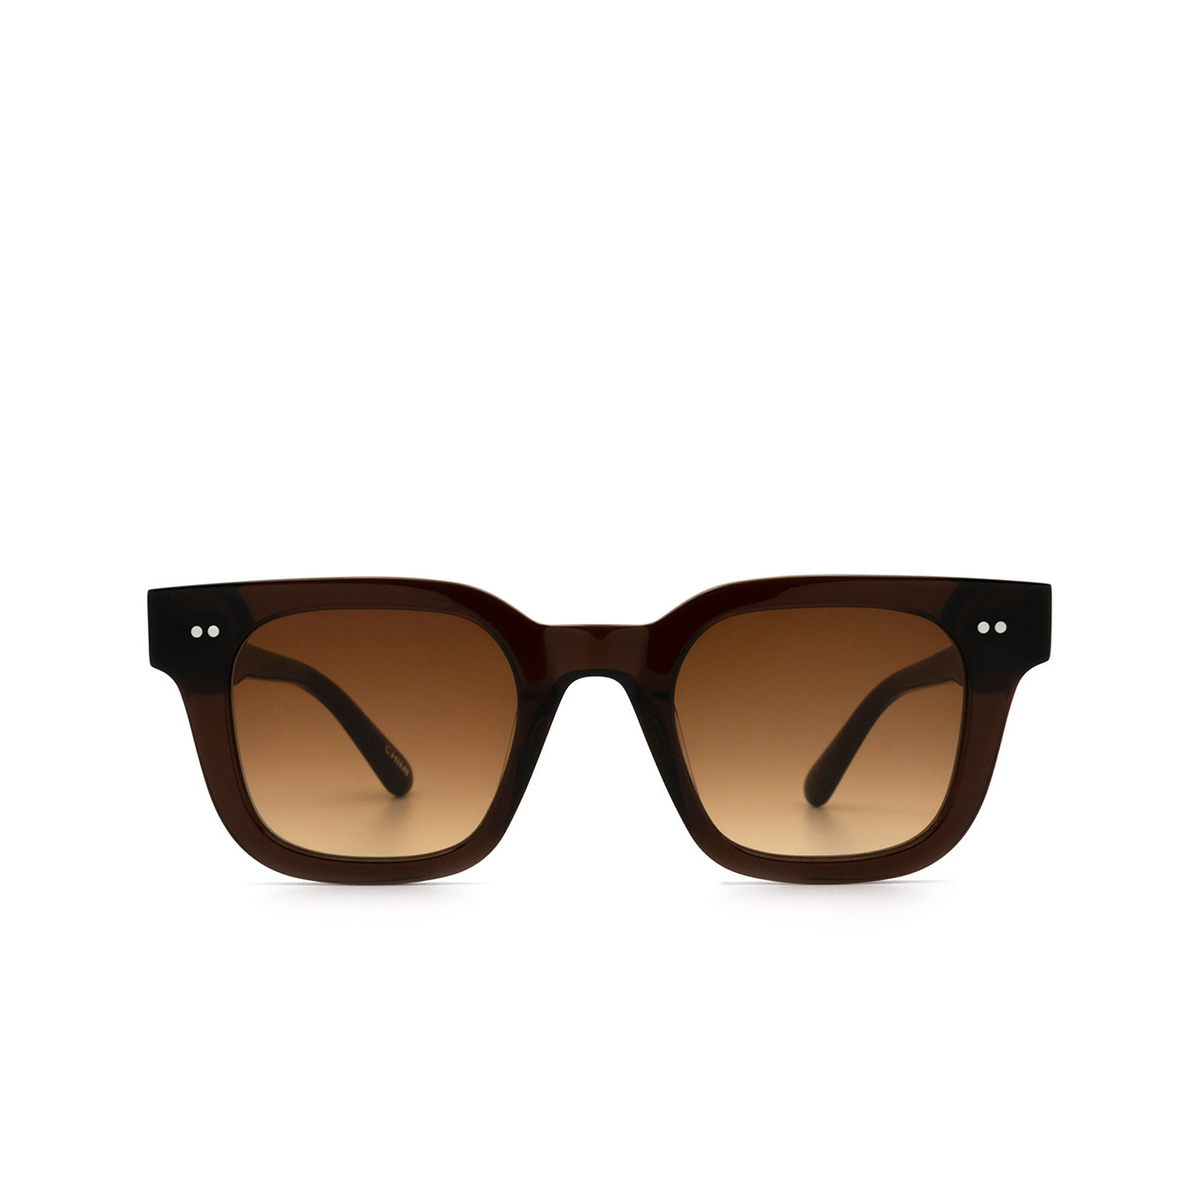 Chimi® Square Sunglasses: 04 color Brown - front view.